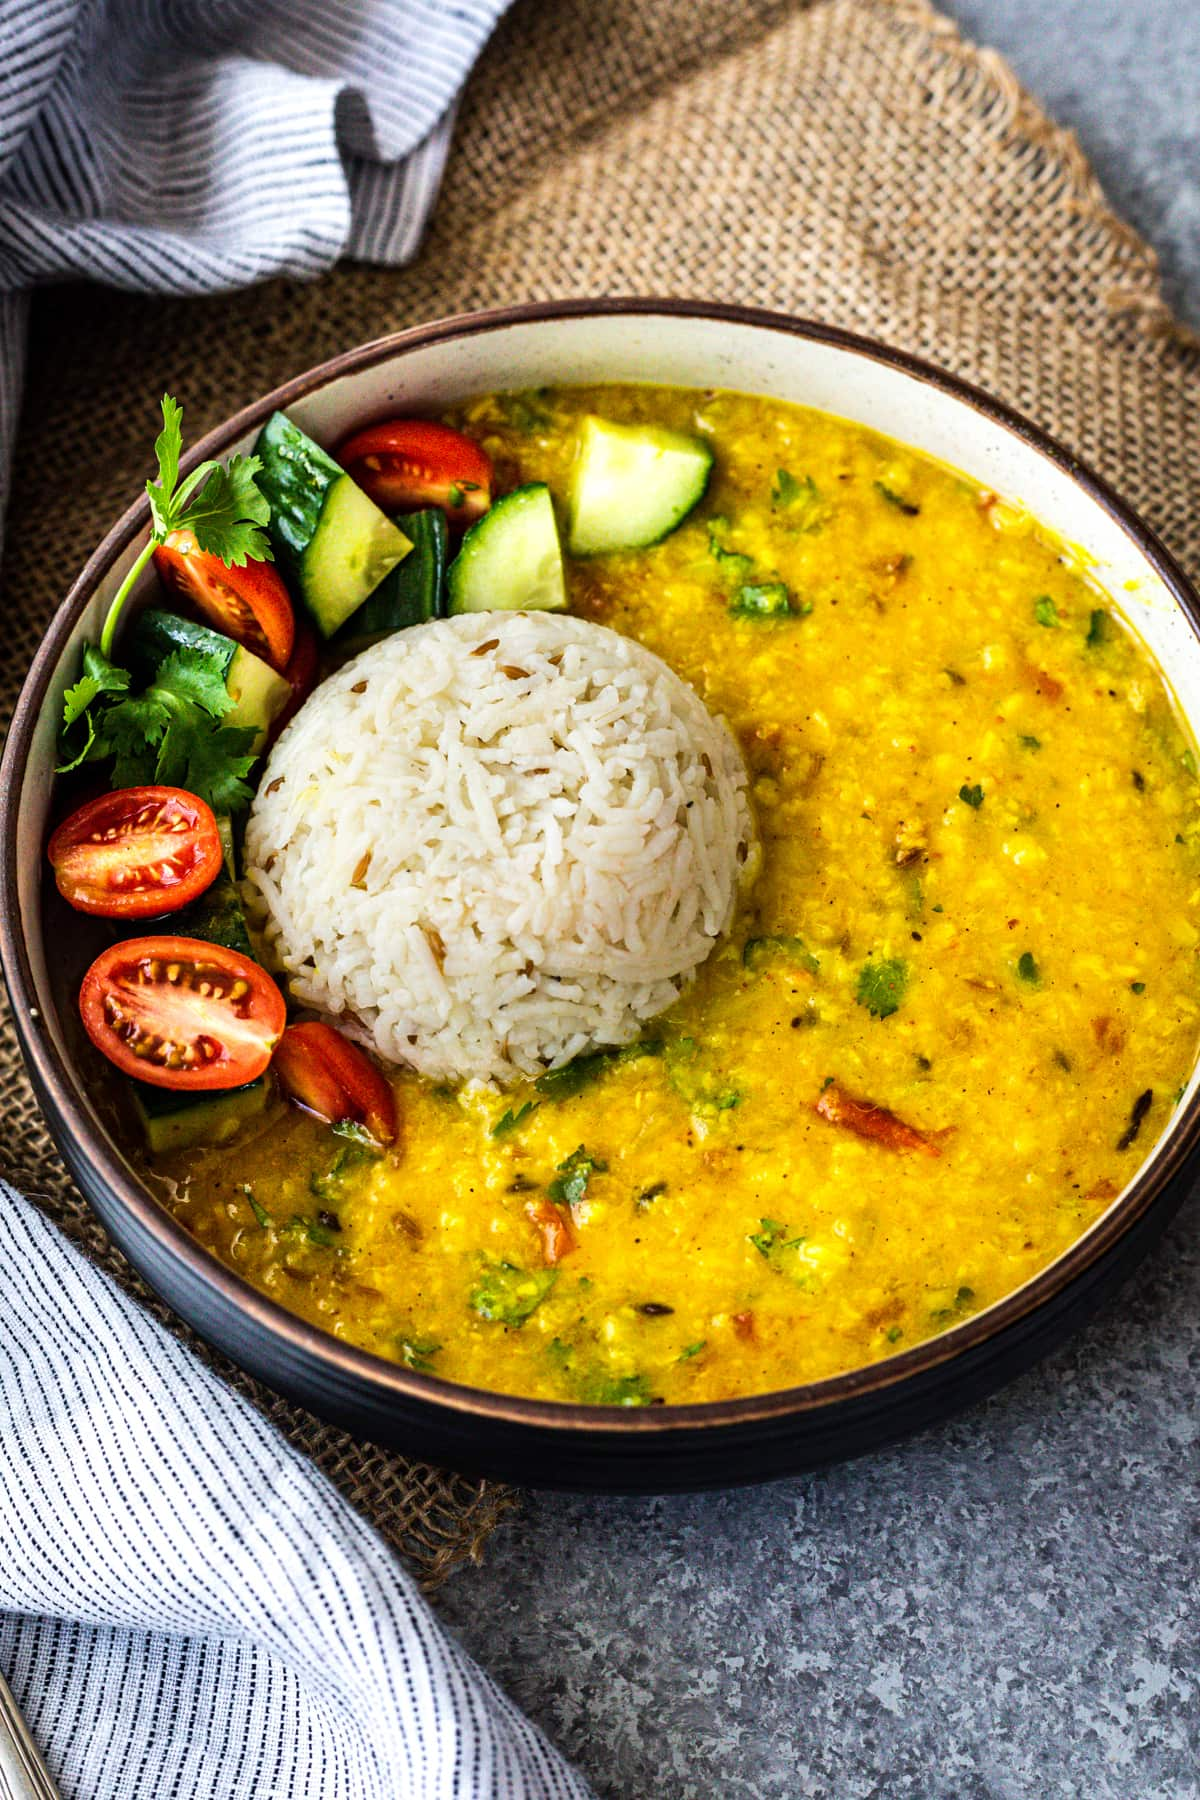 bowl of moong dal topped with a scoop of cumin rice, and cucumber-tomato salad